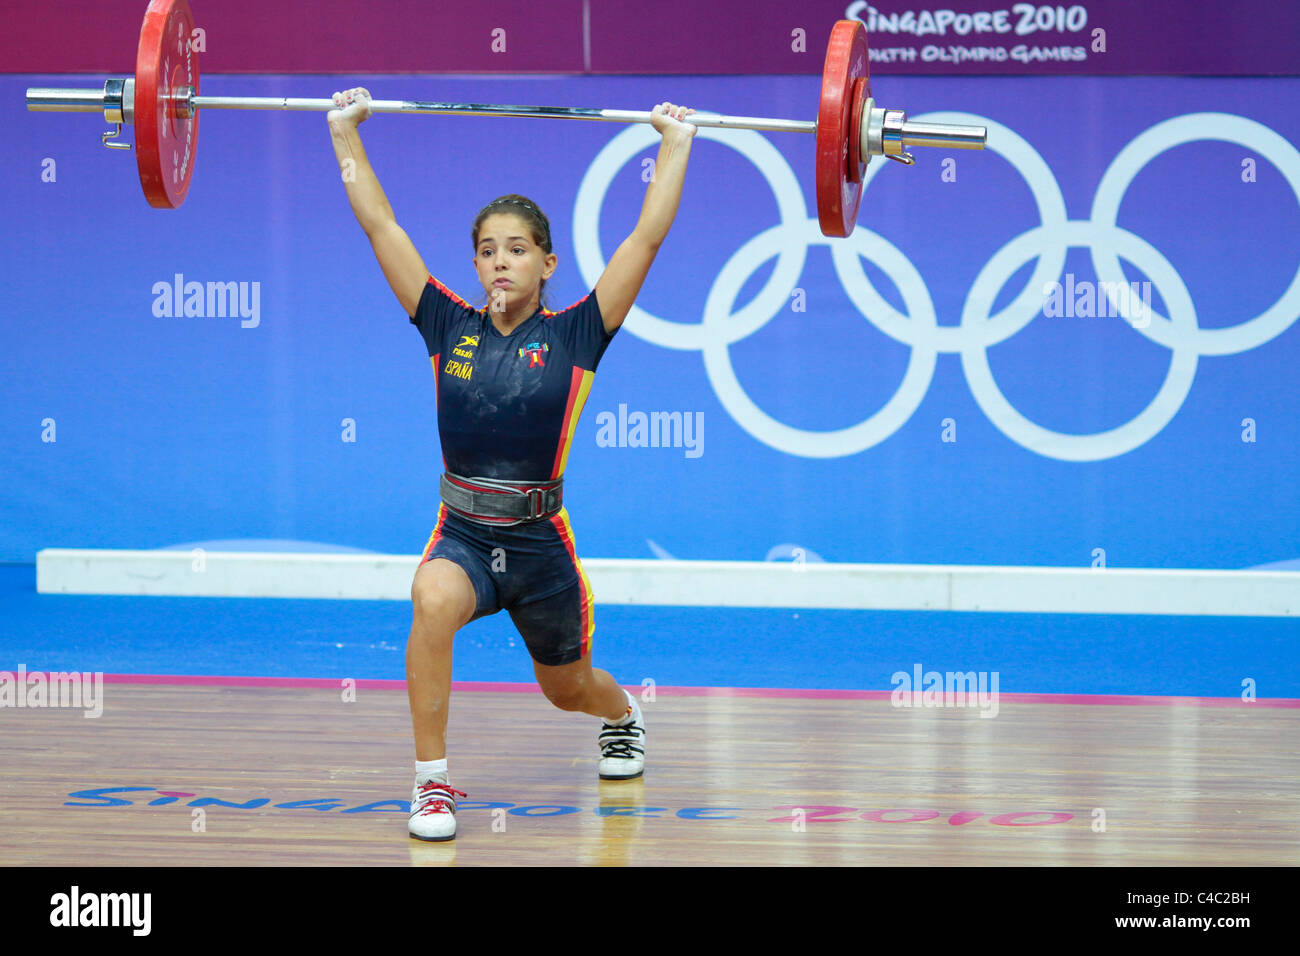 Spain's Atenery Hernandez in action during her clean and jerk routine. - Stock Image